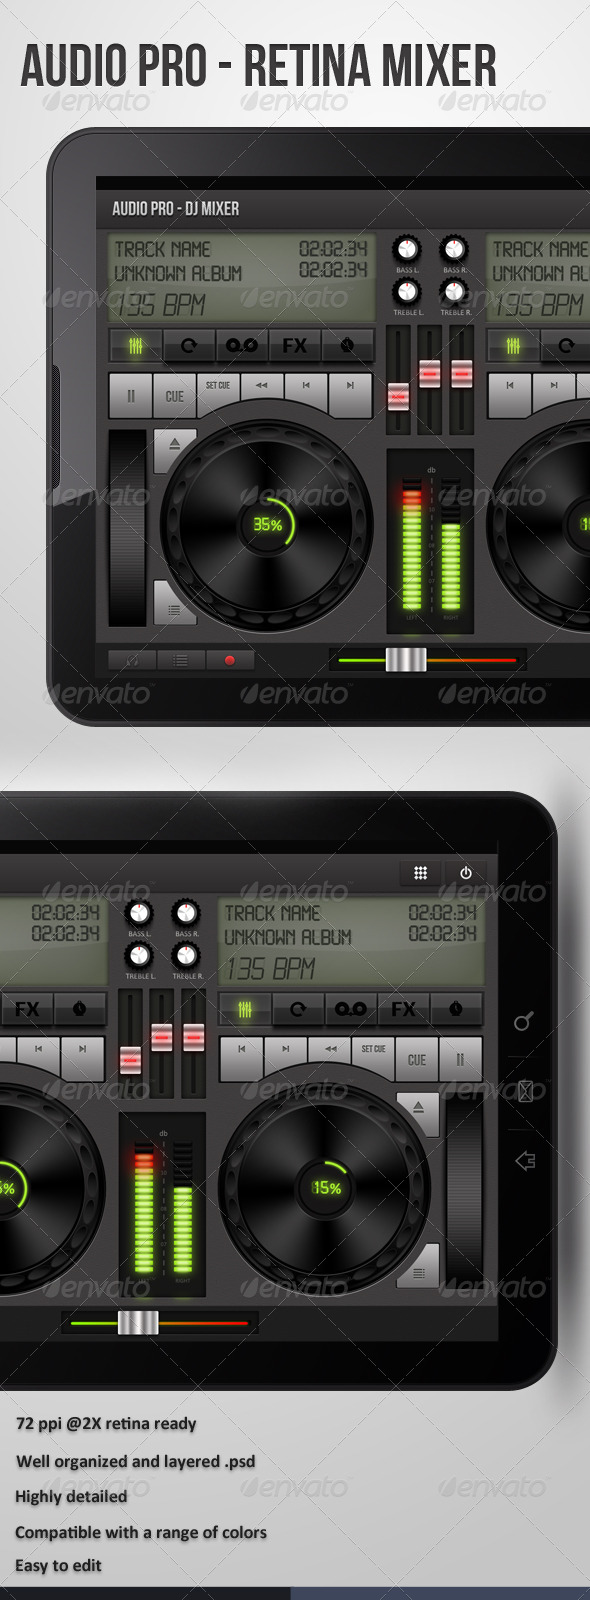 GraphicRiver Dj Mixer Ui For Retina Audio 4546207